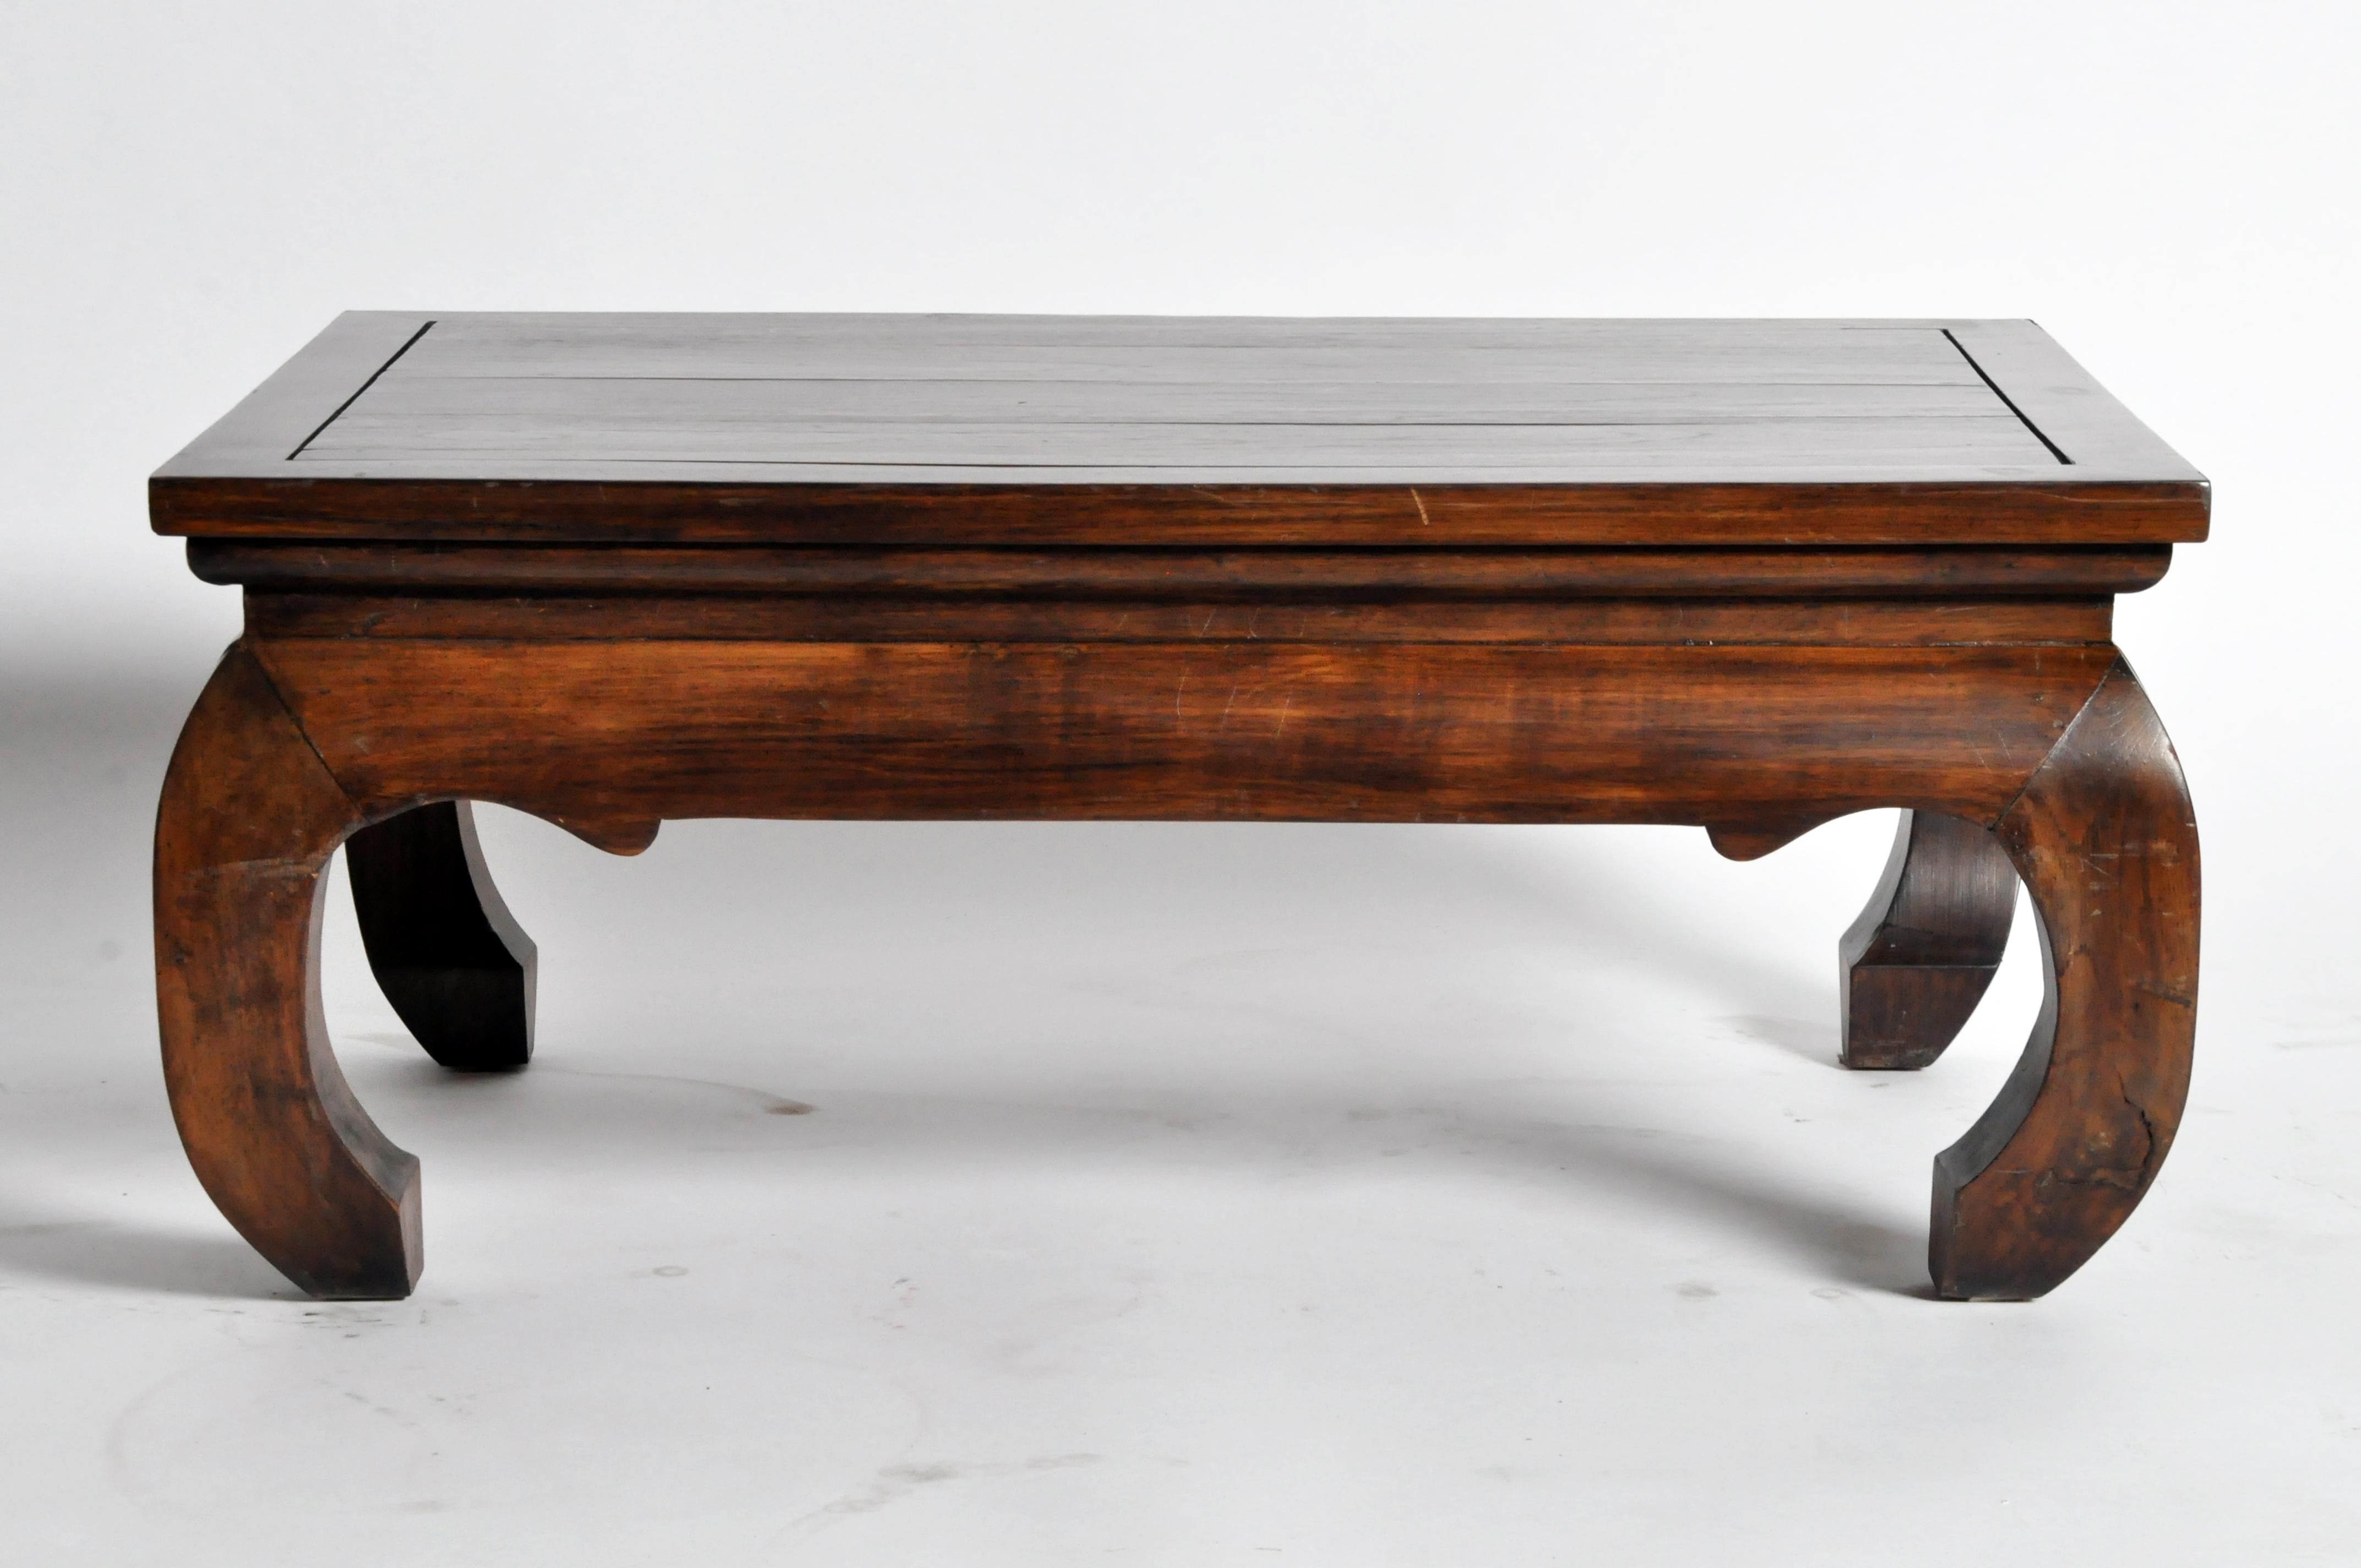 Image Of Lanna Thai Coffee Table